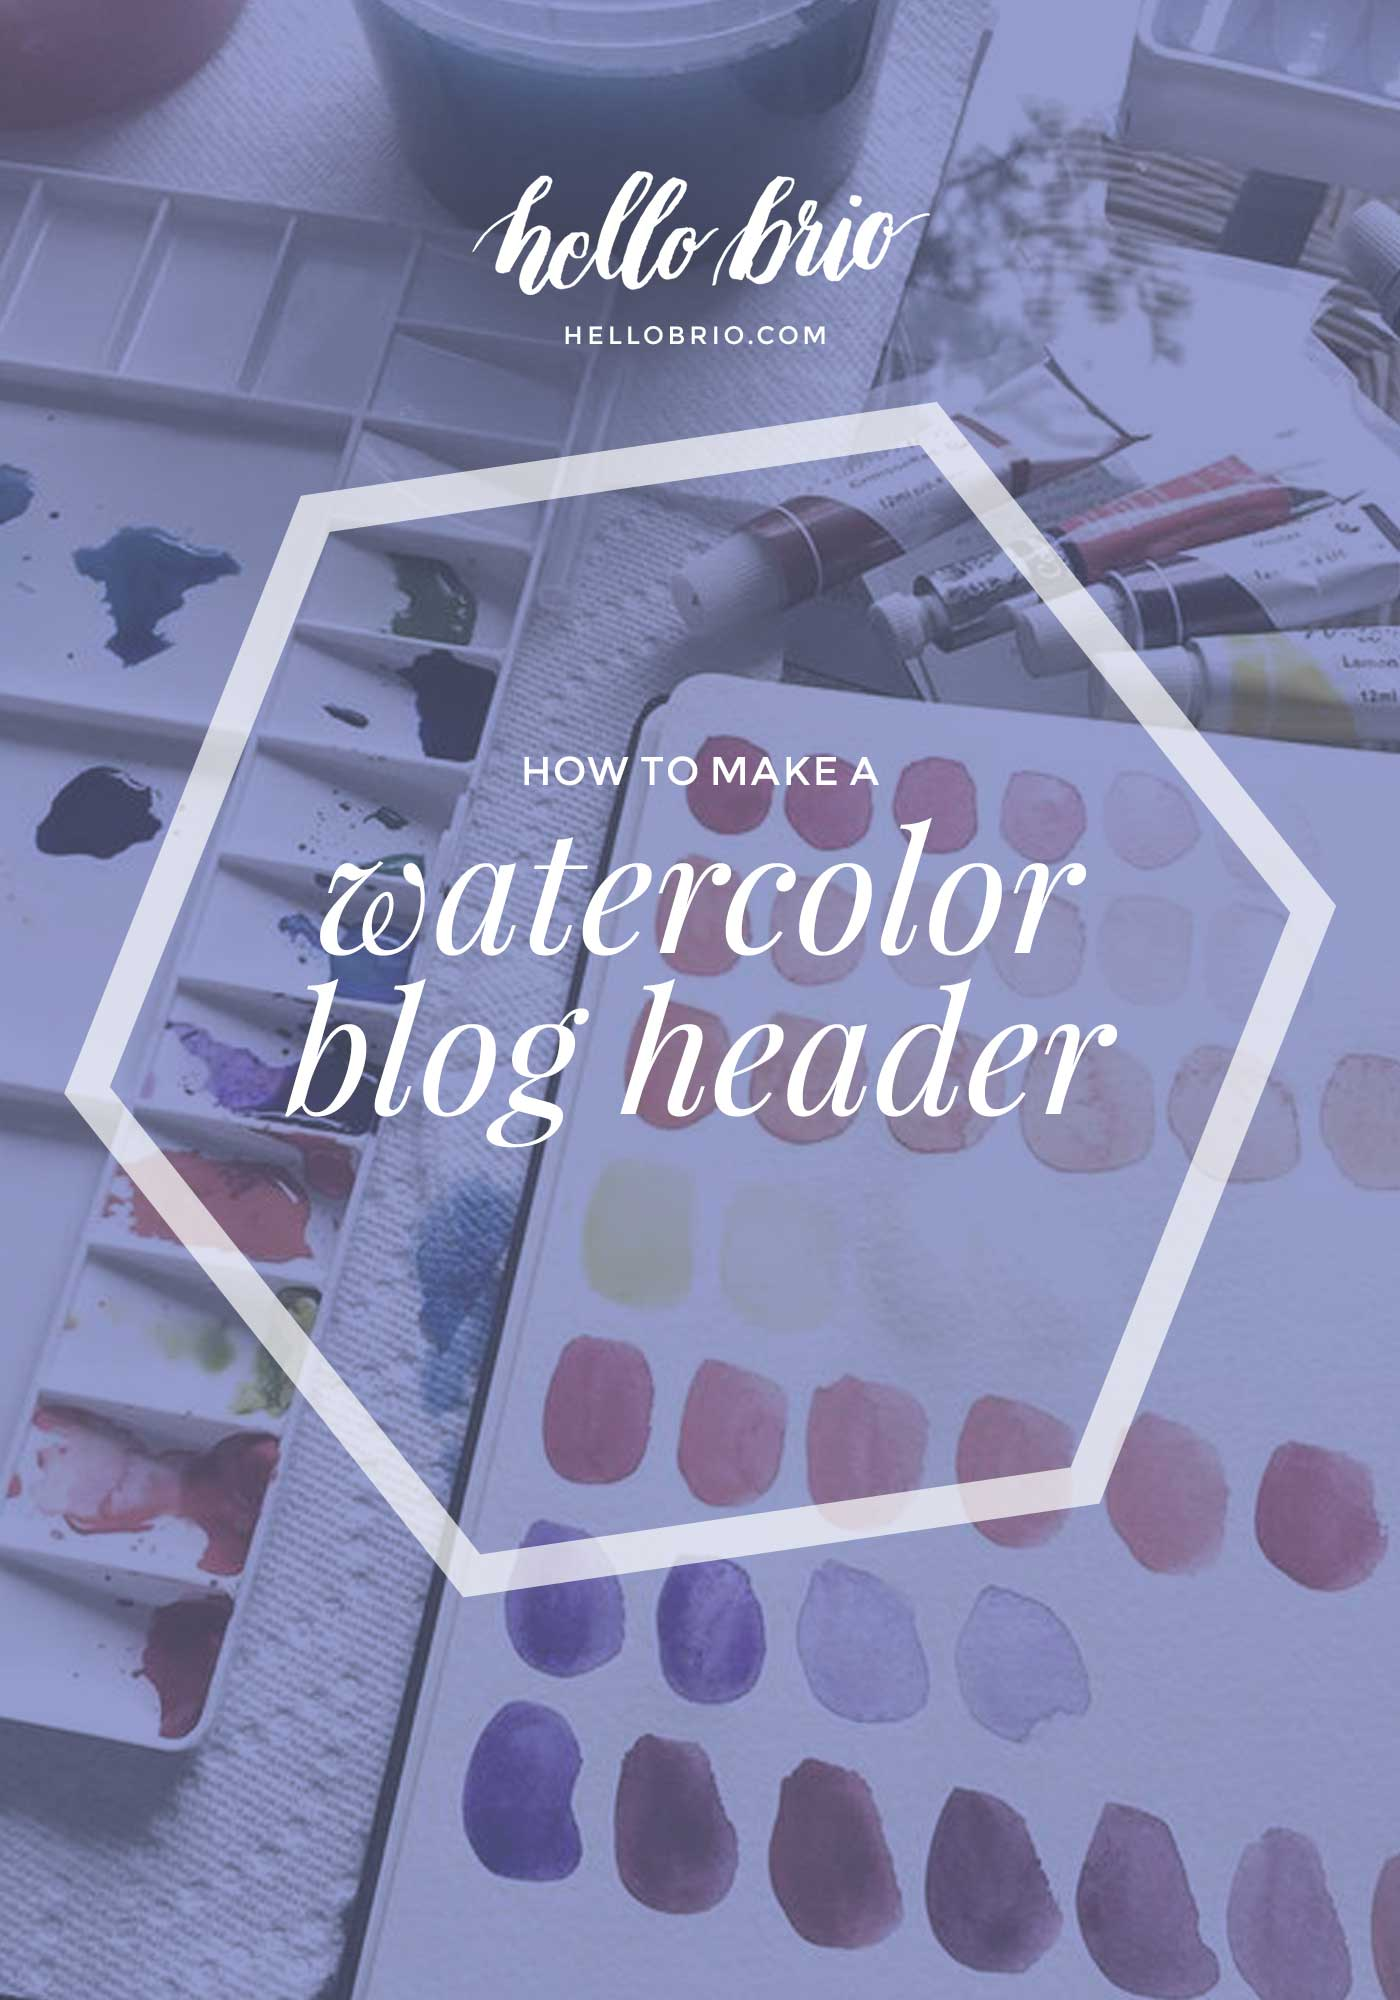 How to make a watercolor blog header from start to finish in Photoshop | Hello Brio tutorials